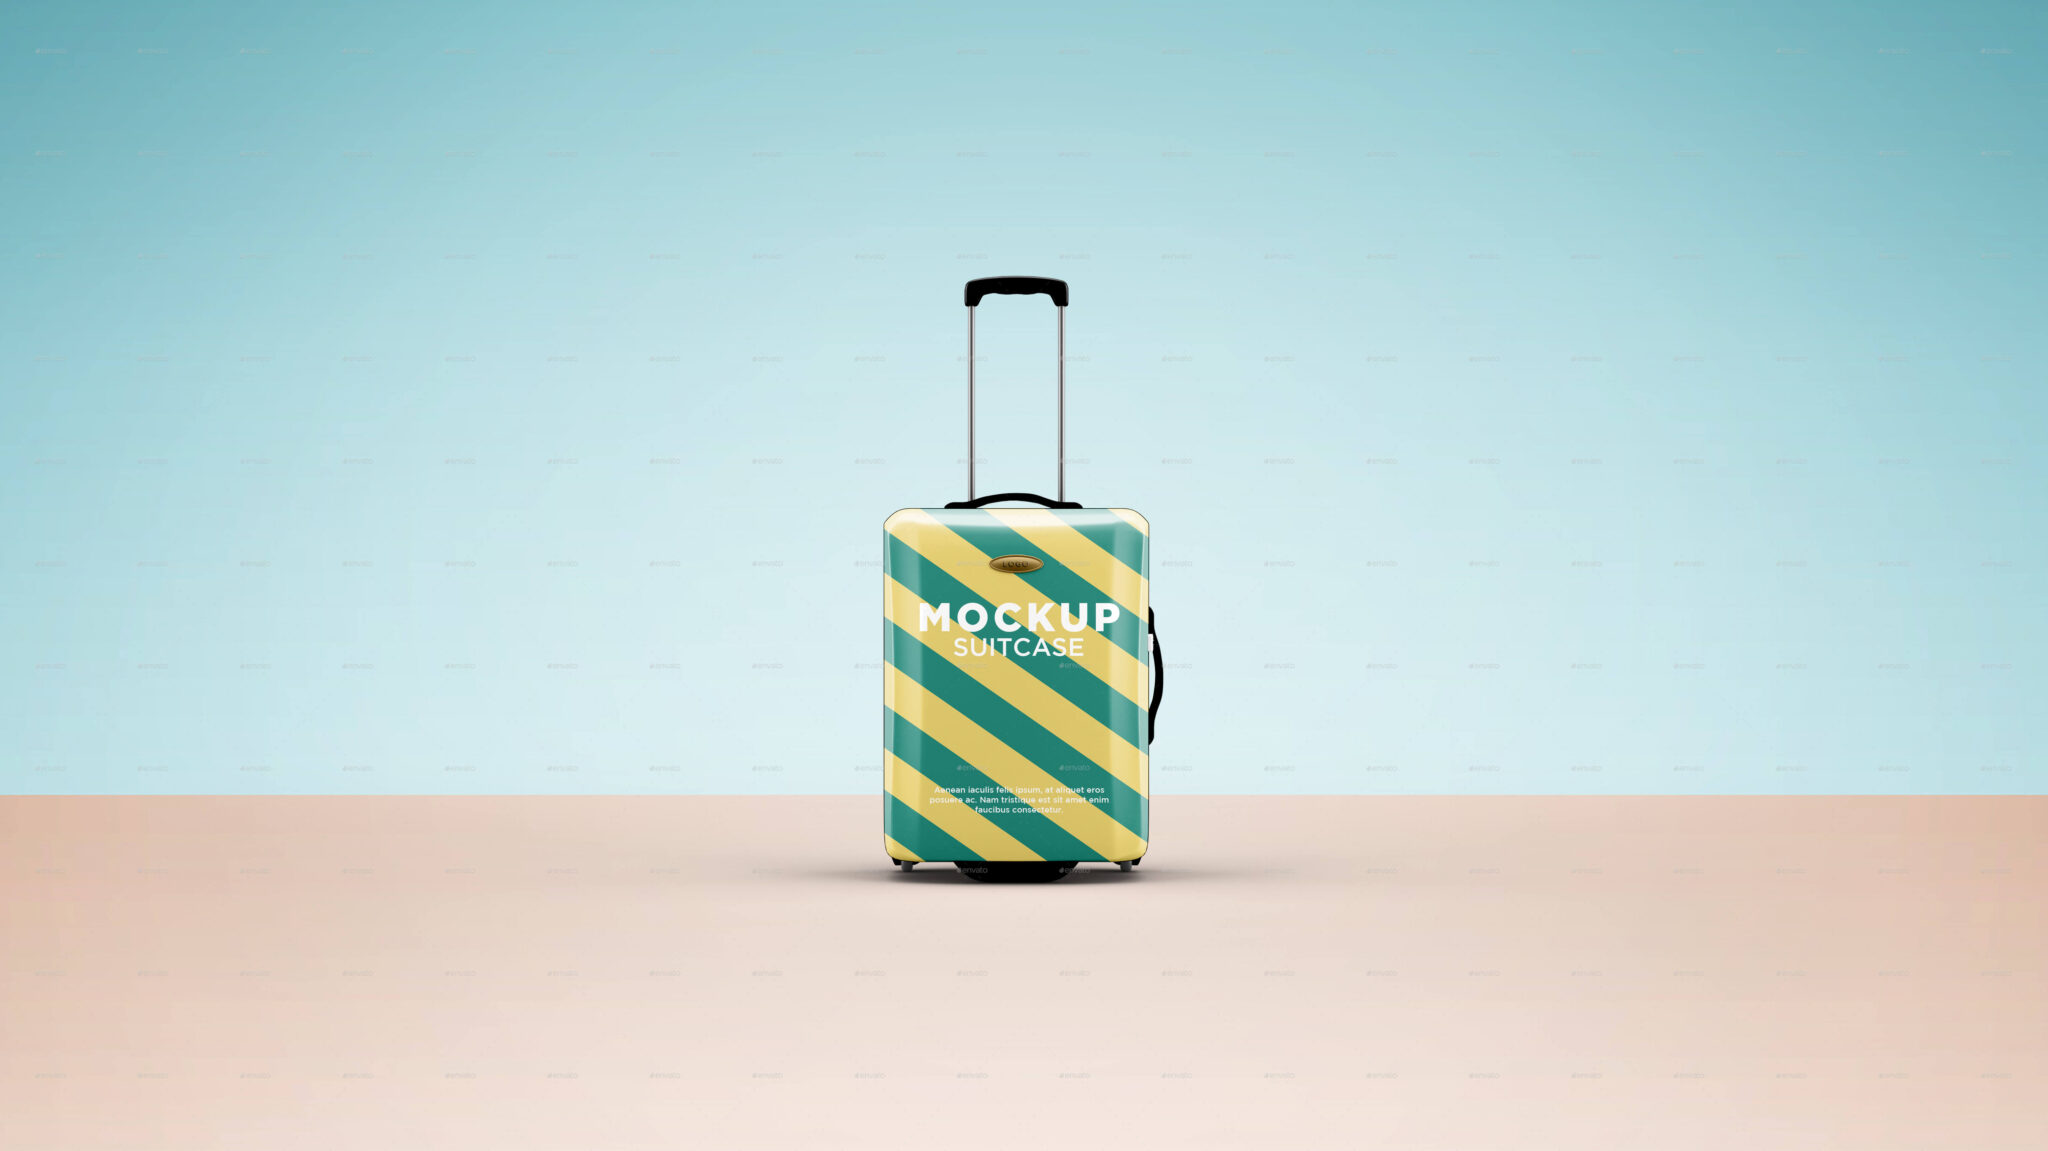 Clean Design Suitcase Bag Mockup